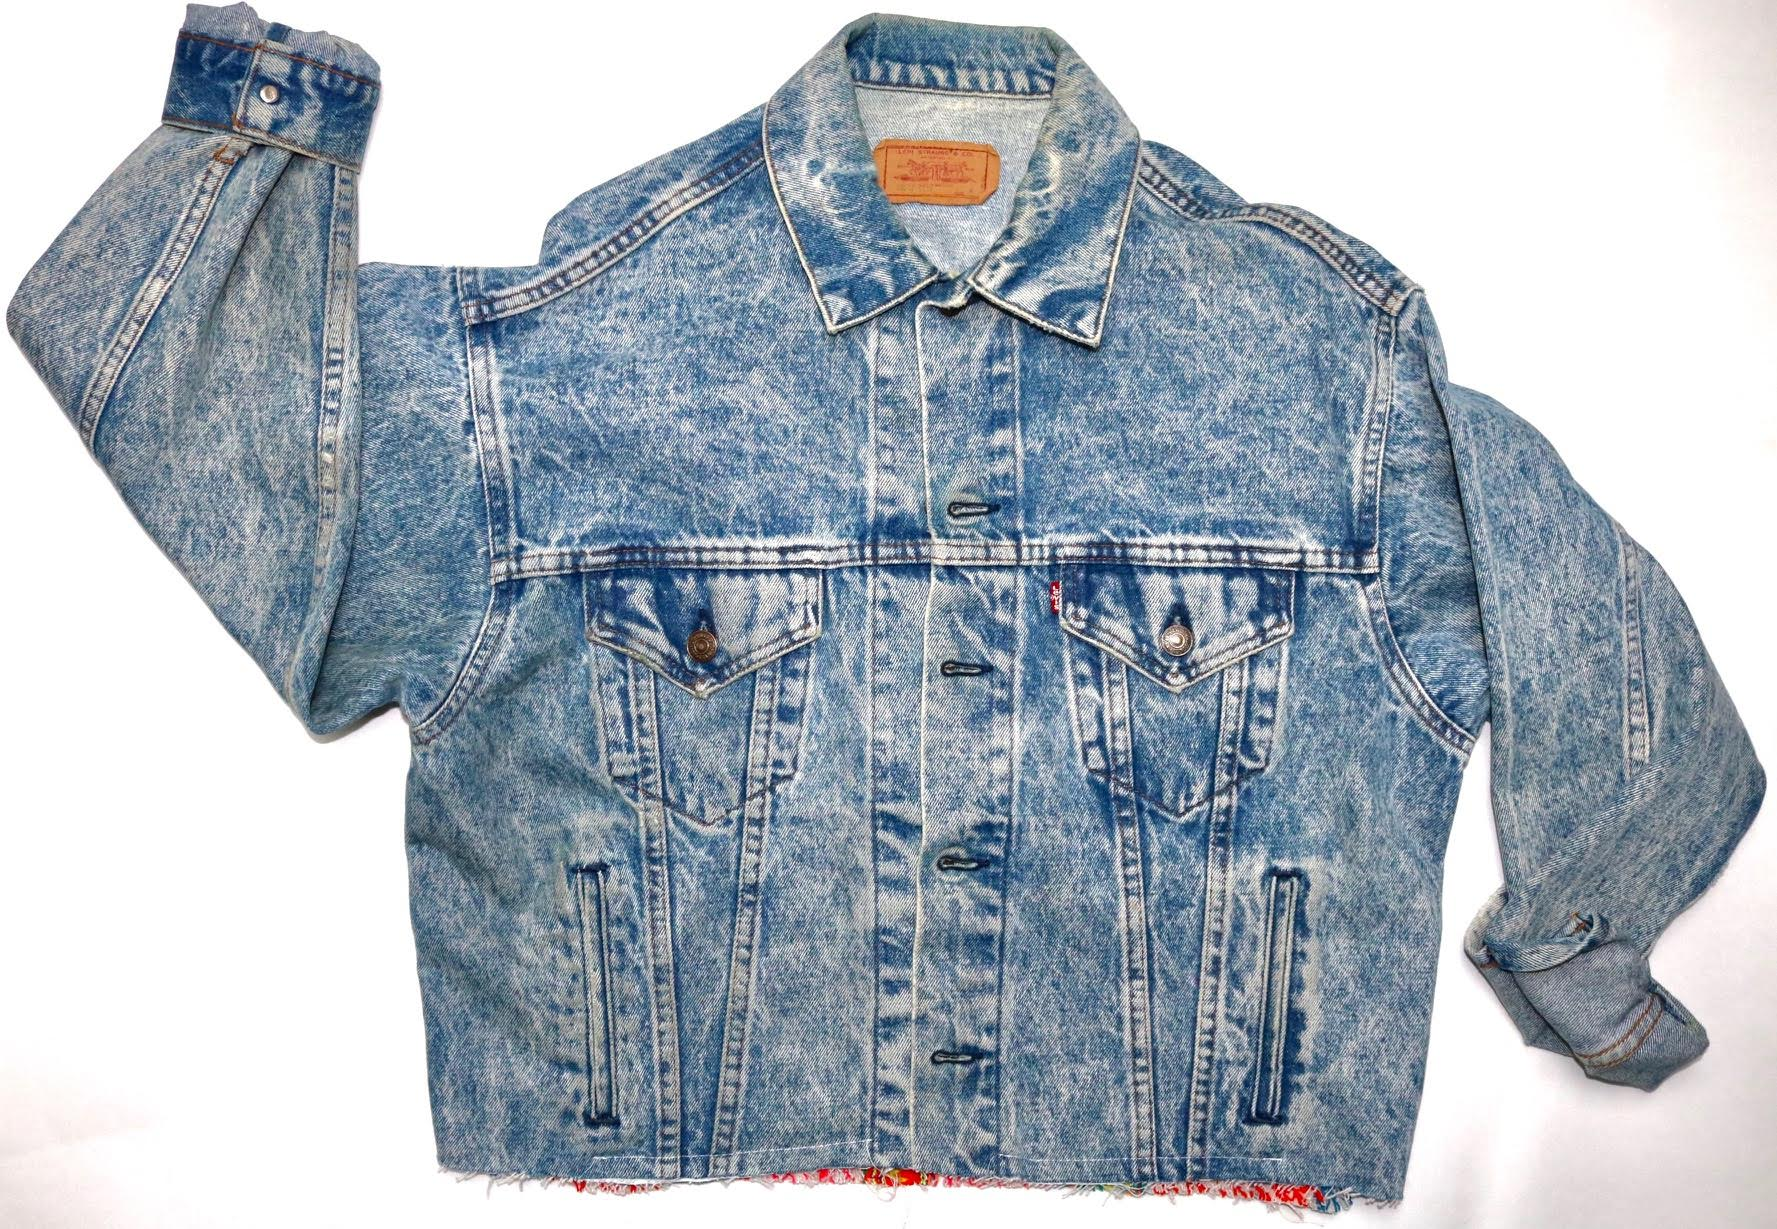 Denim No. 81